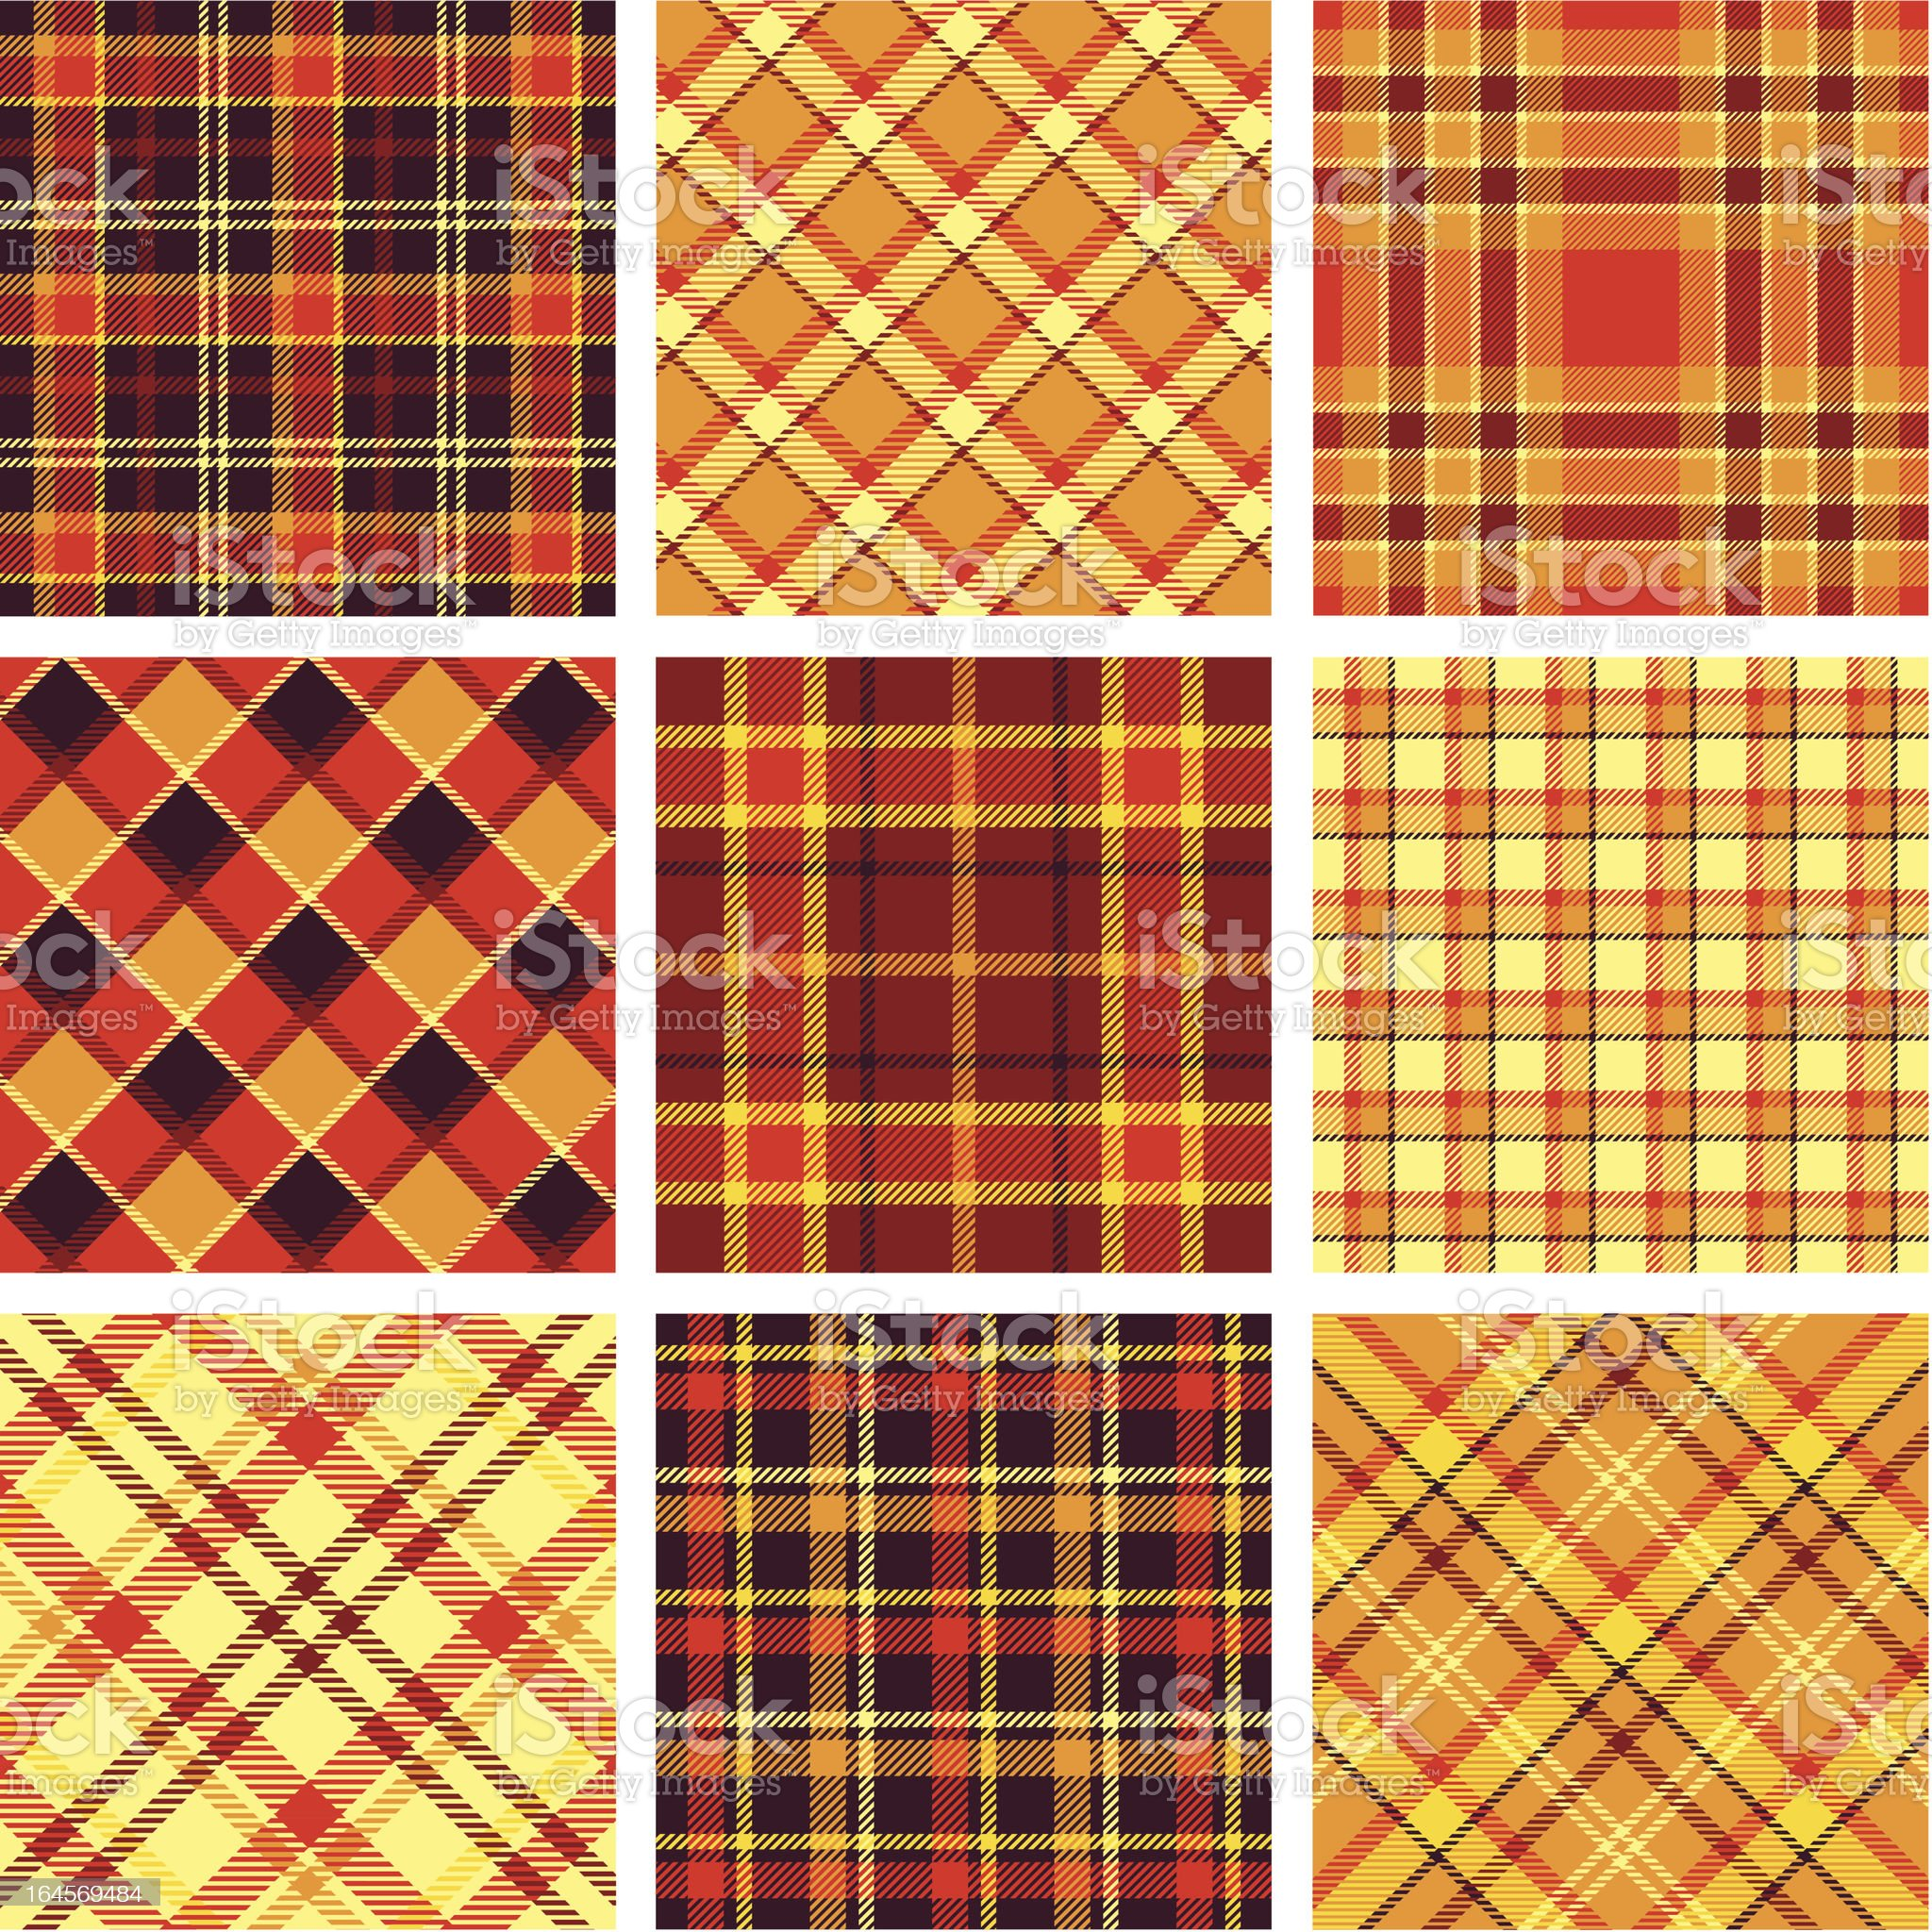 Orange, red, yellow and black plaid patterns royalty-free stock vector art